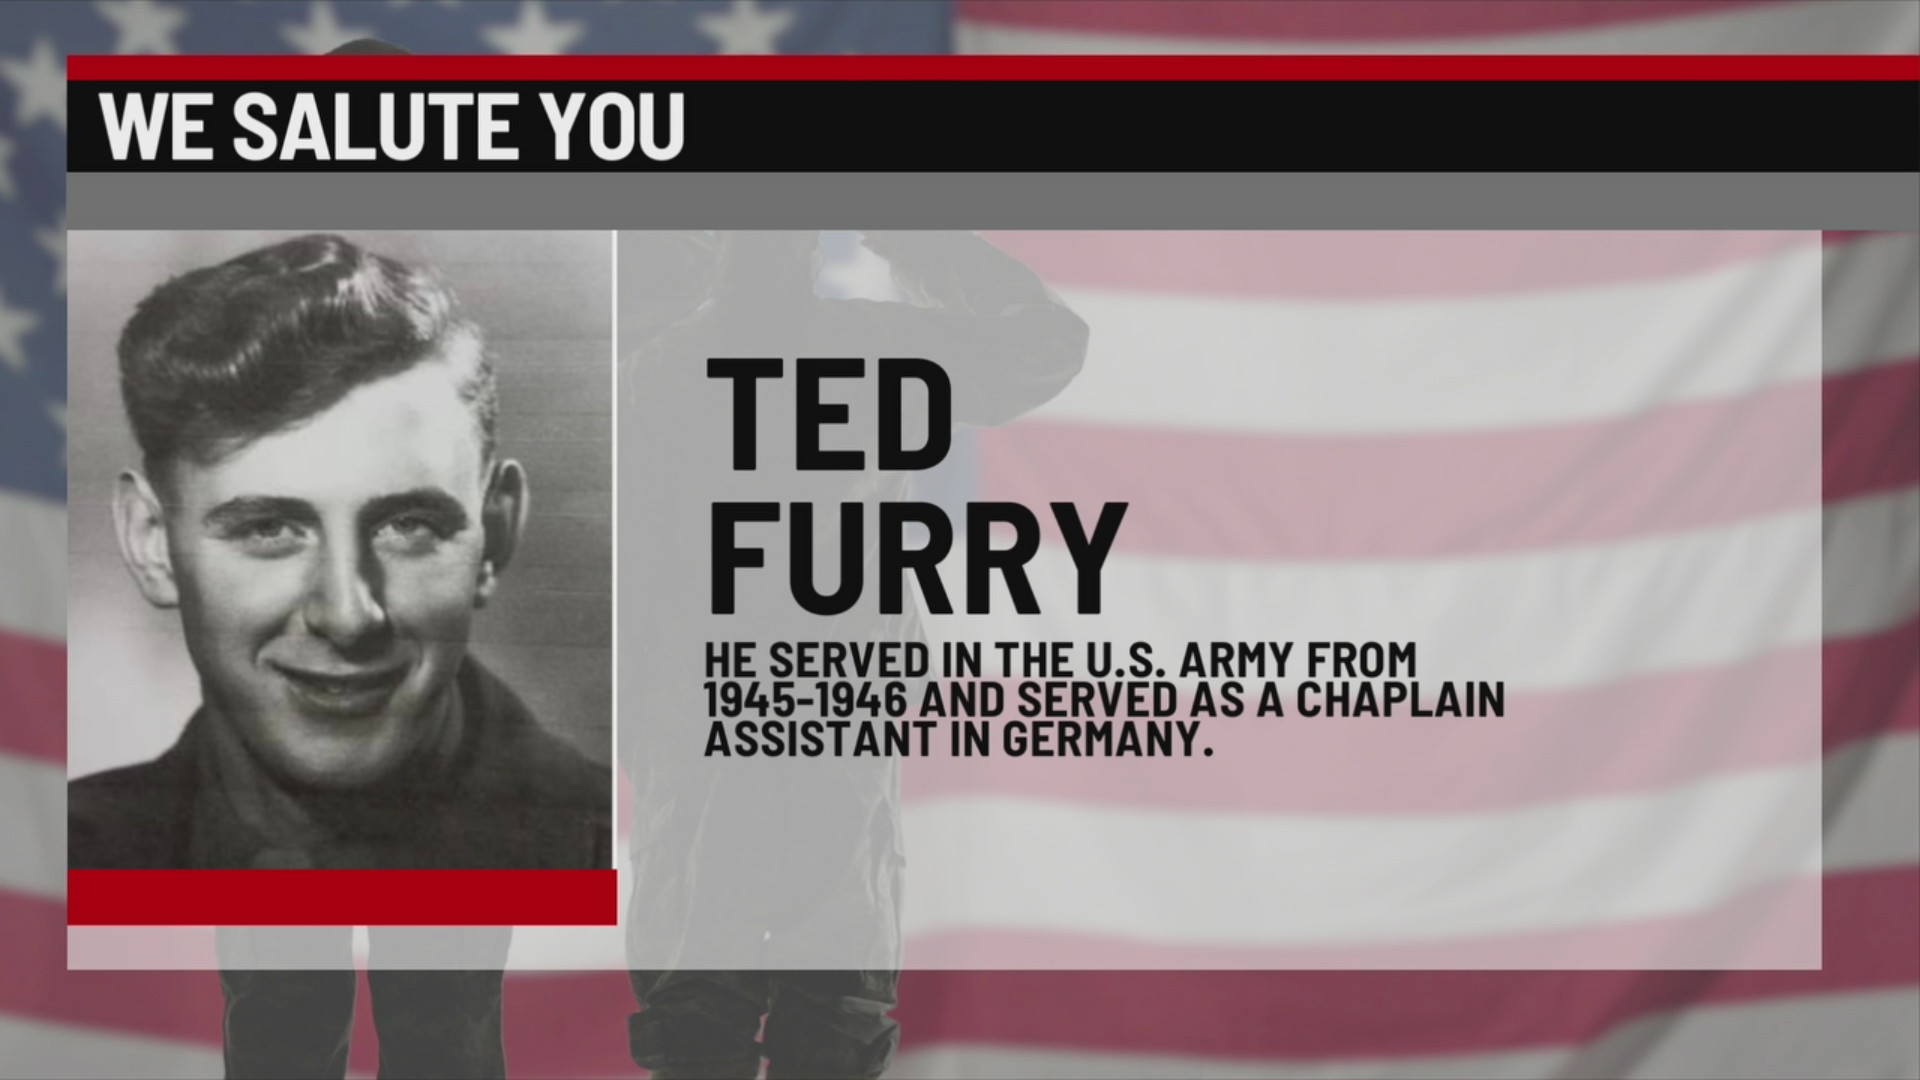 We Salute You Ted Furry